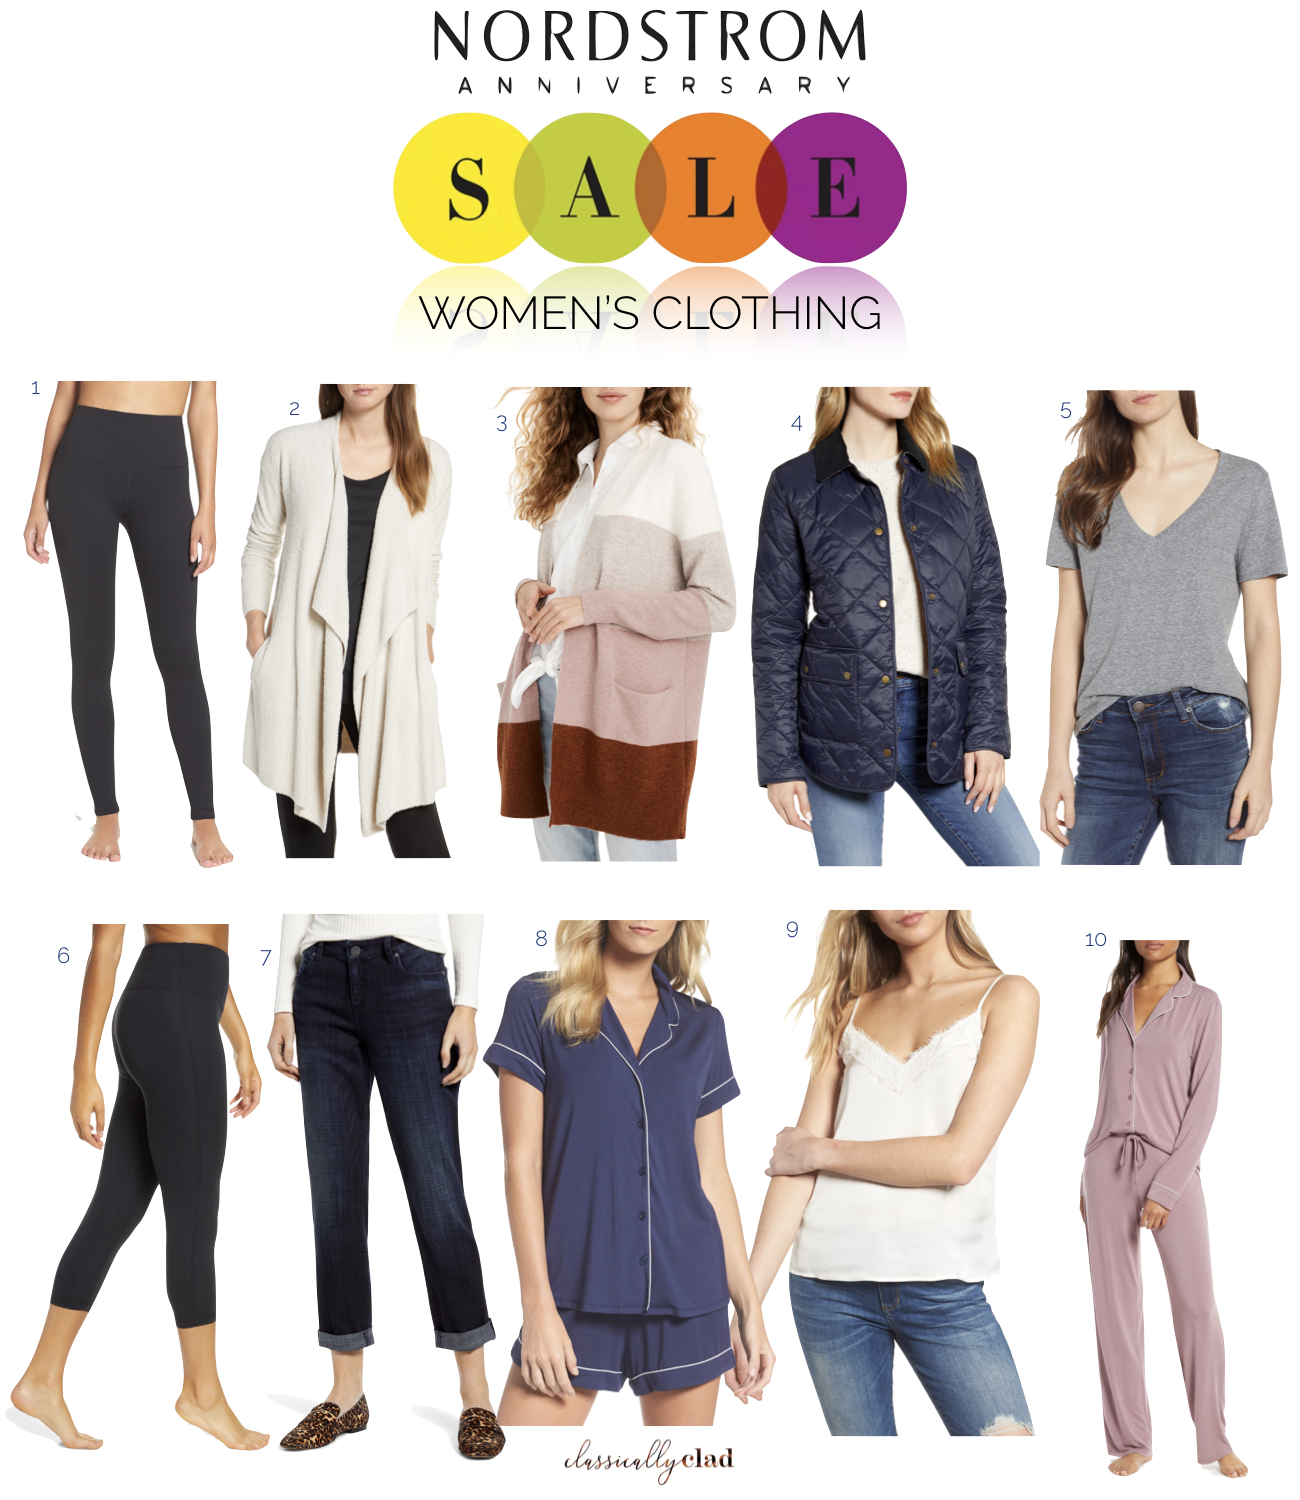 NORDSTROM ANNIVERSARY WOMEN CLOTHES.001